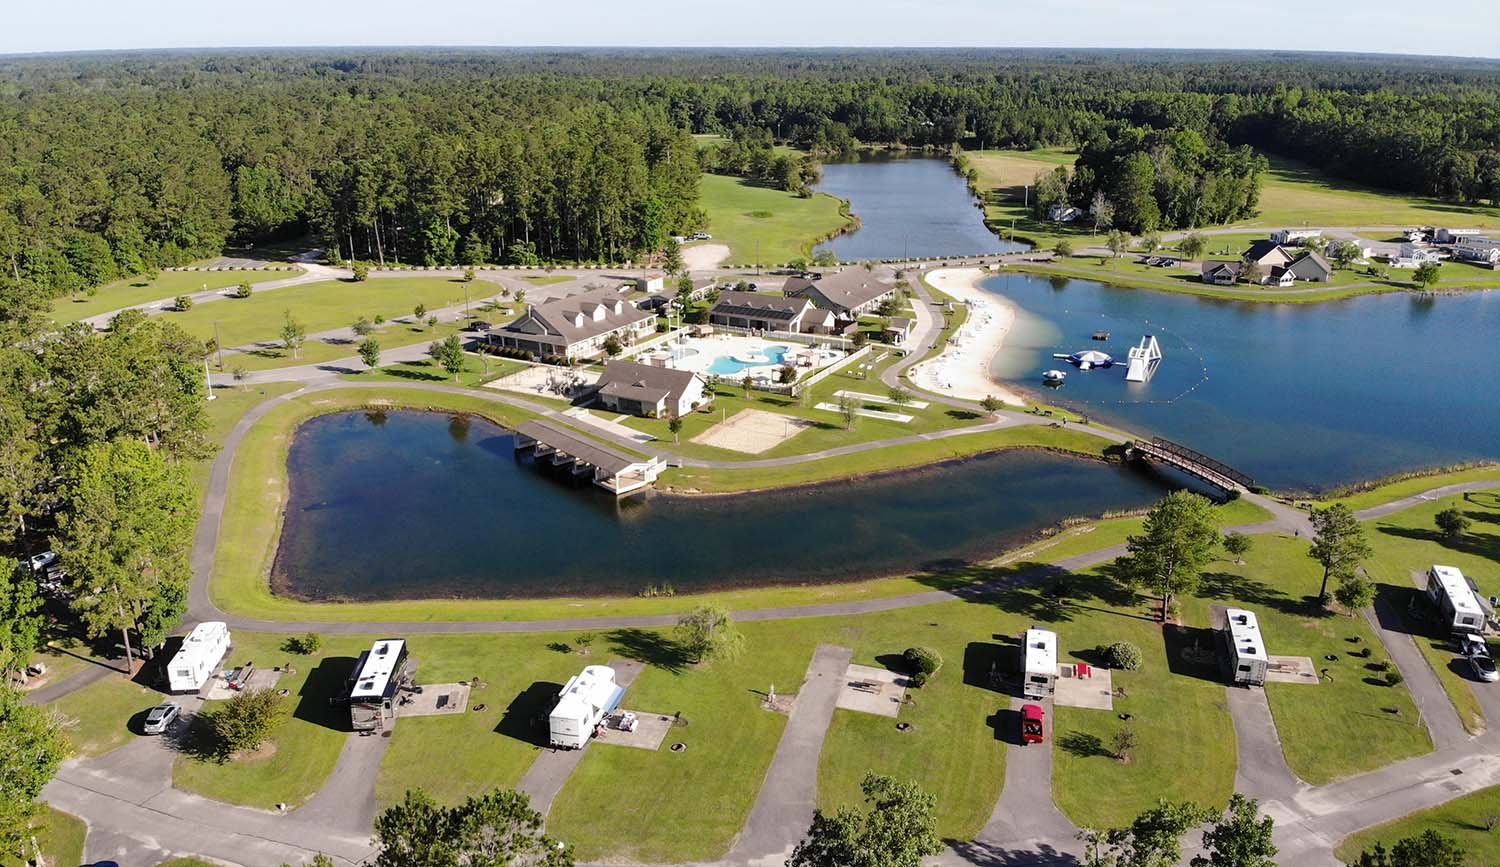 Aerial shot of RVs parked on green lawn around a pond area.